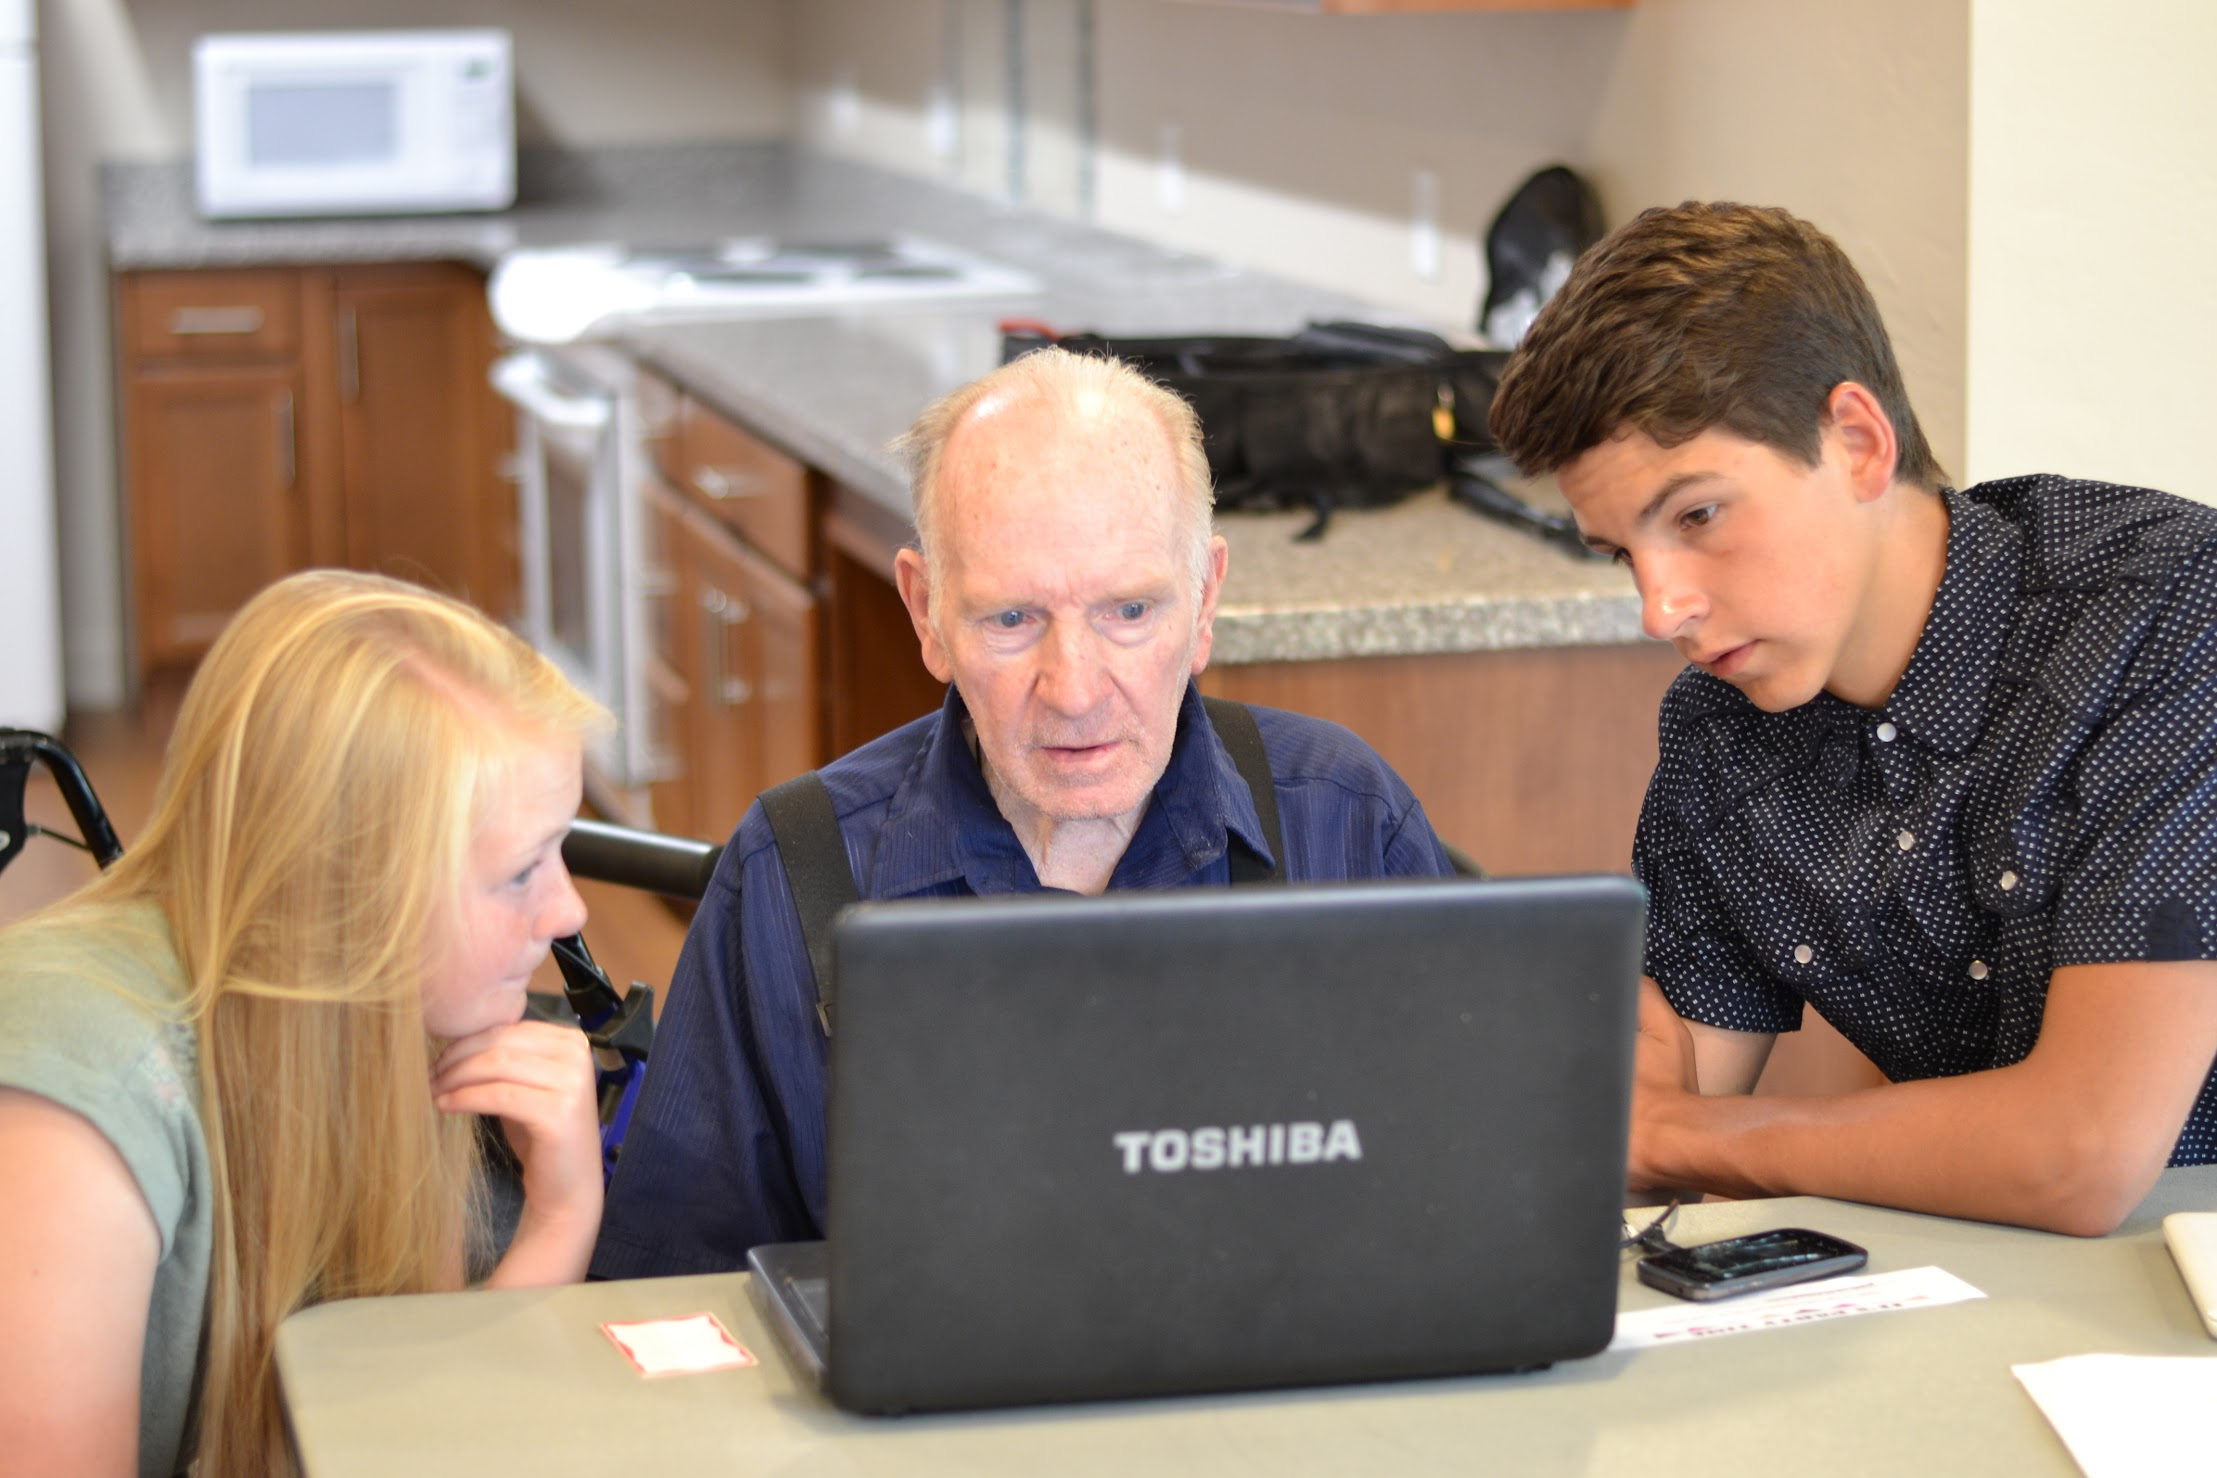 Seniors get tutored in technology by teens